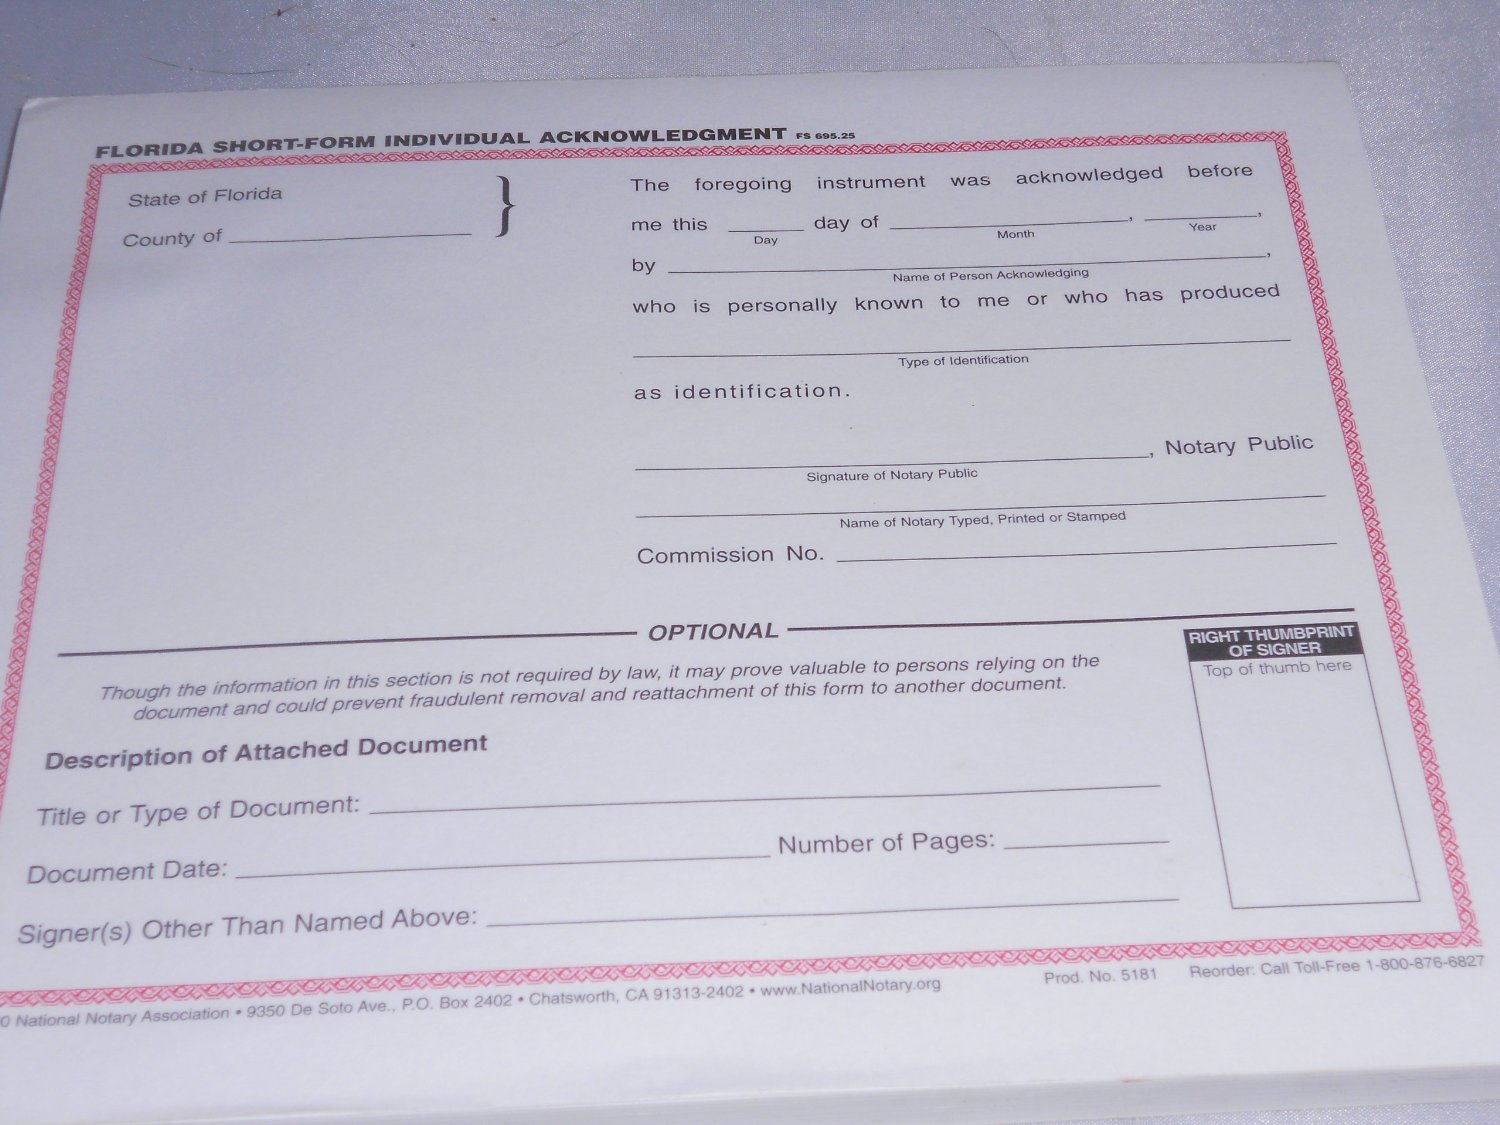 Notary Certificate Acknowledgement Short Form